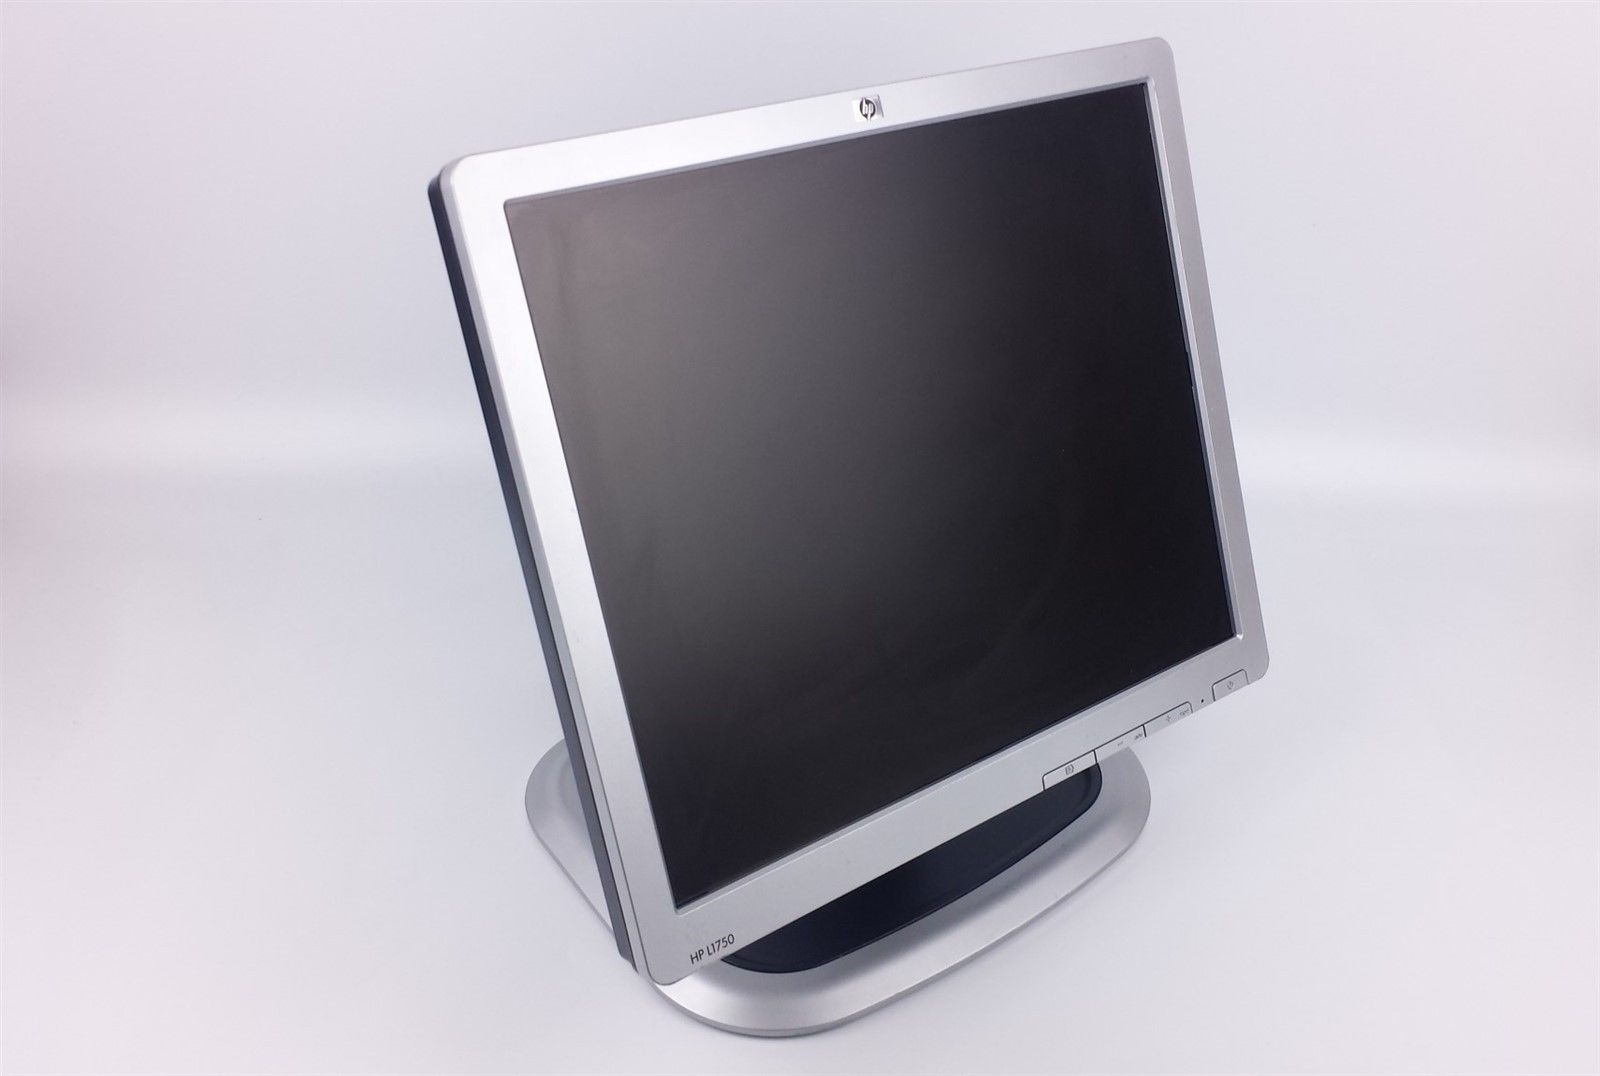 "HP L1750 Flat Screen LCD Computer Monitor 17"" GF904A w/ Power & VGA Cord"